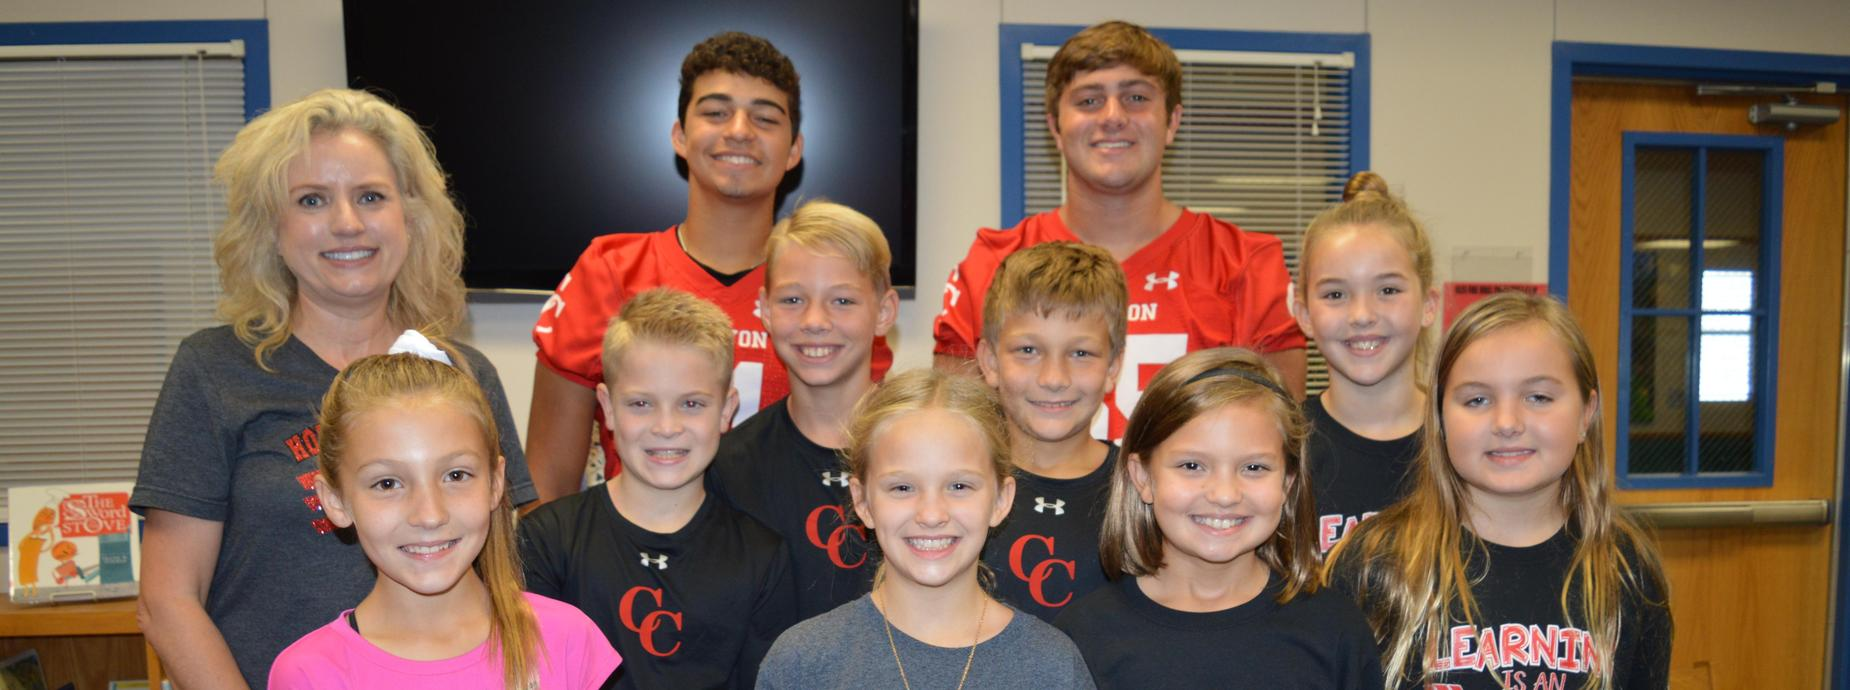 CHS FOOTBALL PLAYERS AT HLES